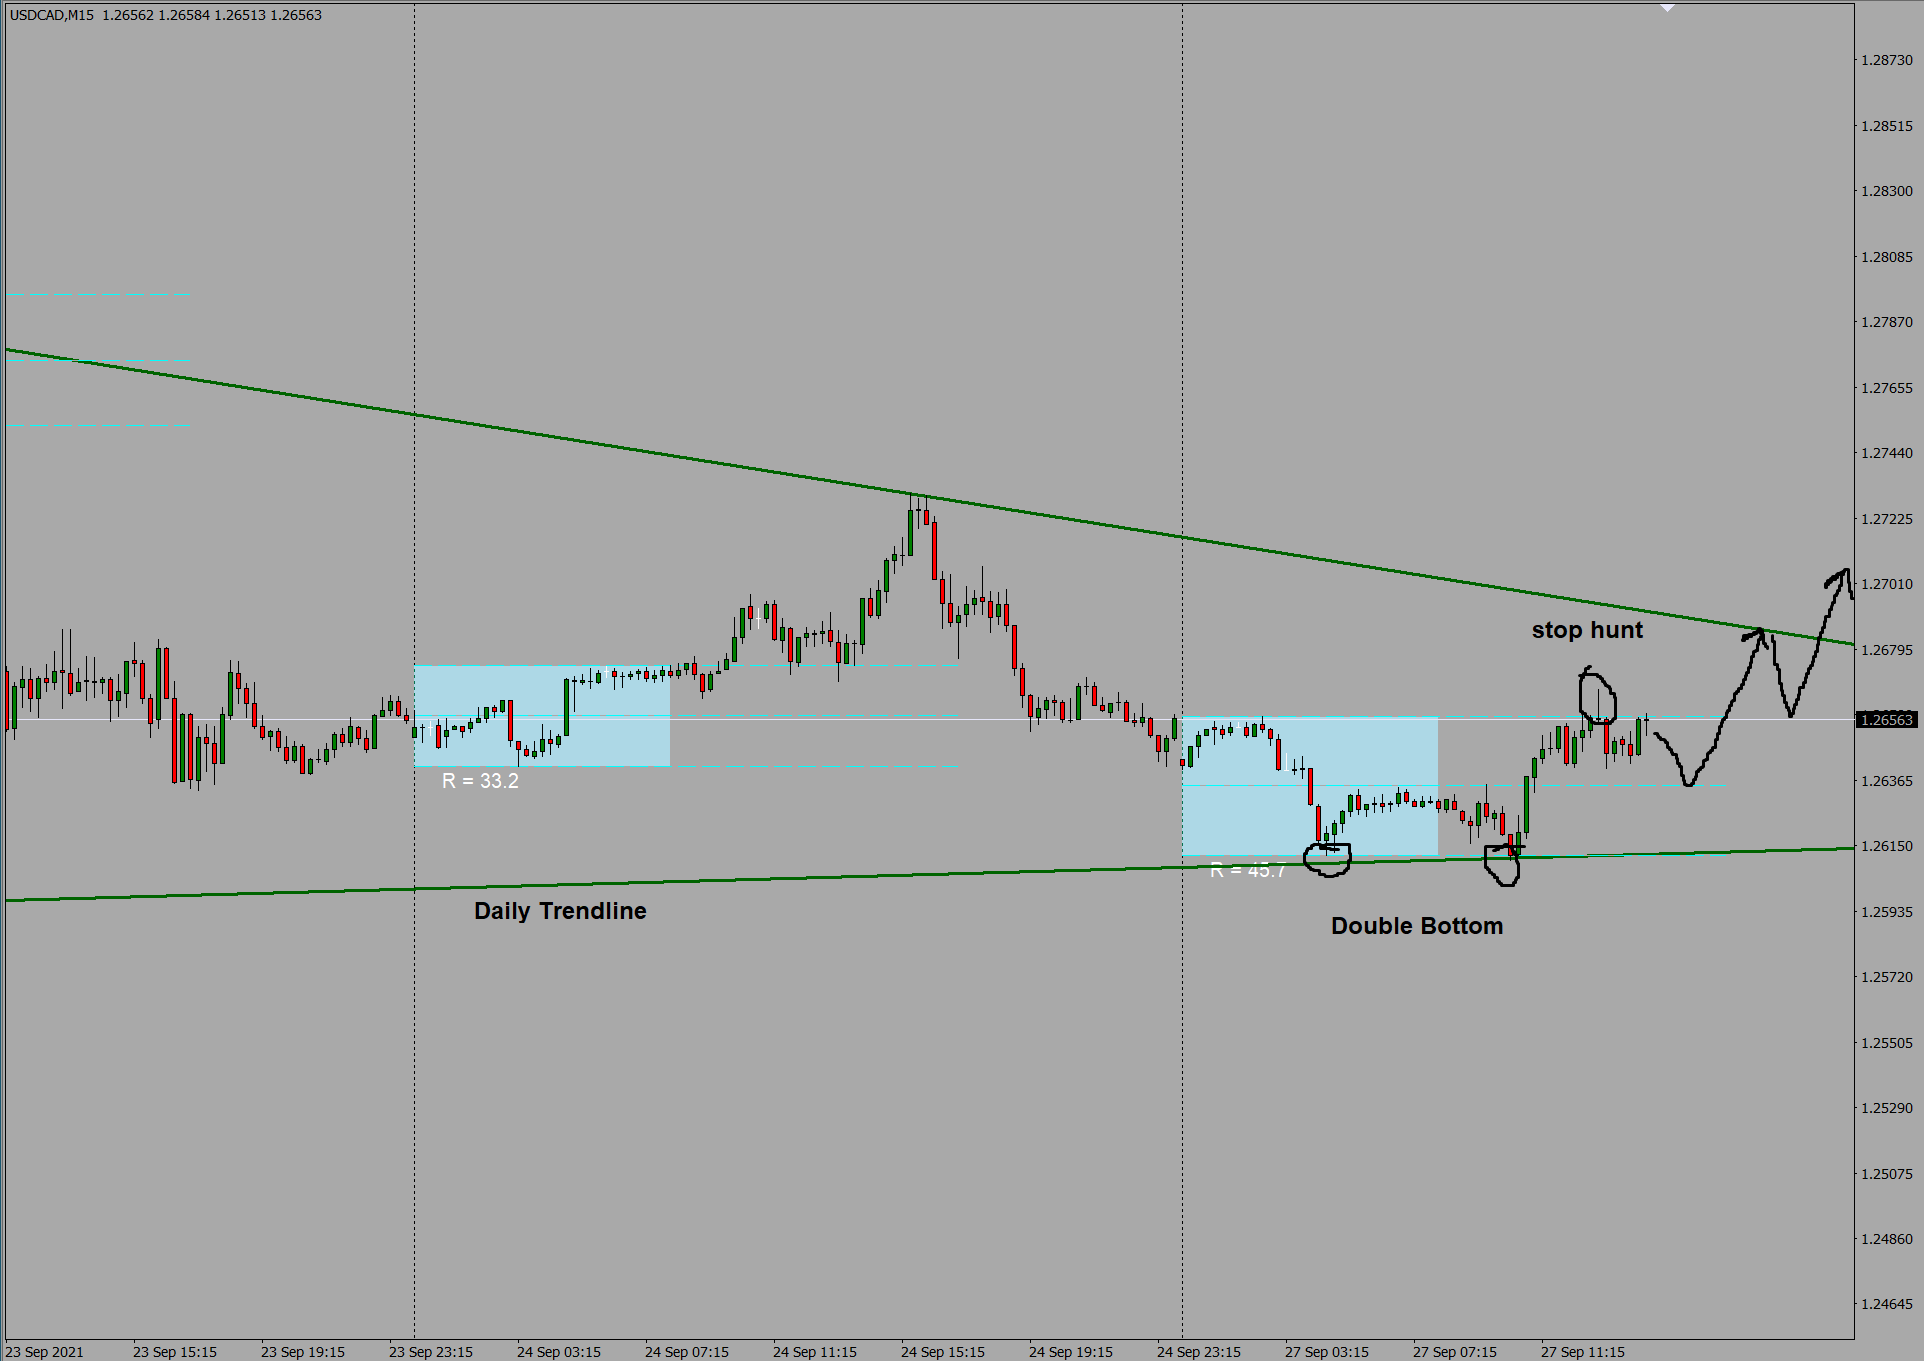 USD/CAD M15 Trend line and Price Action